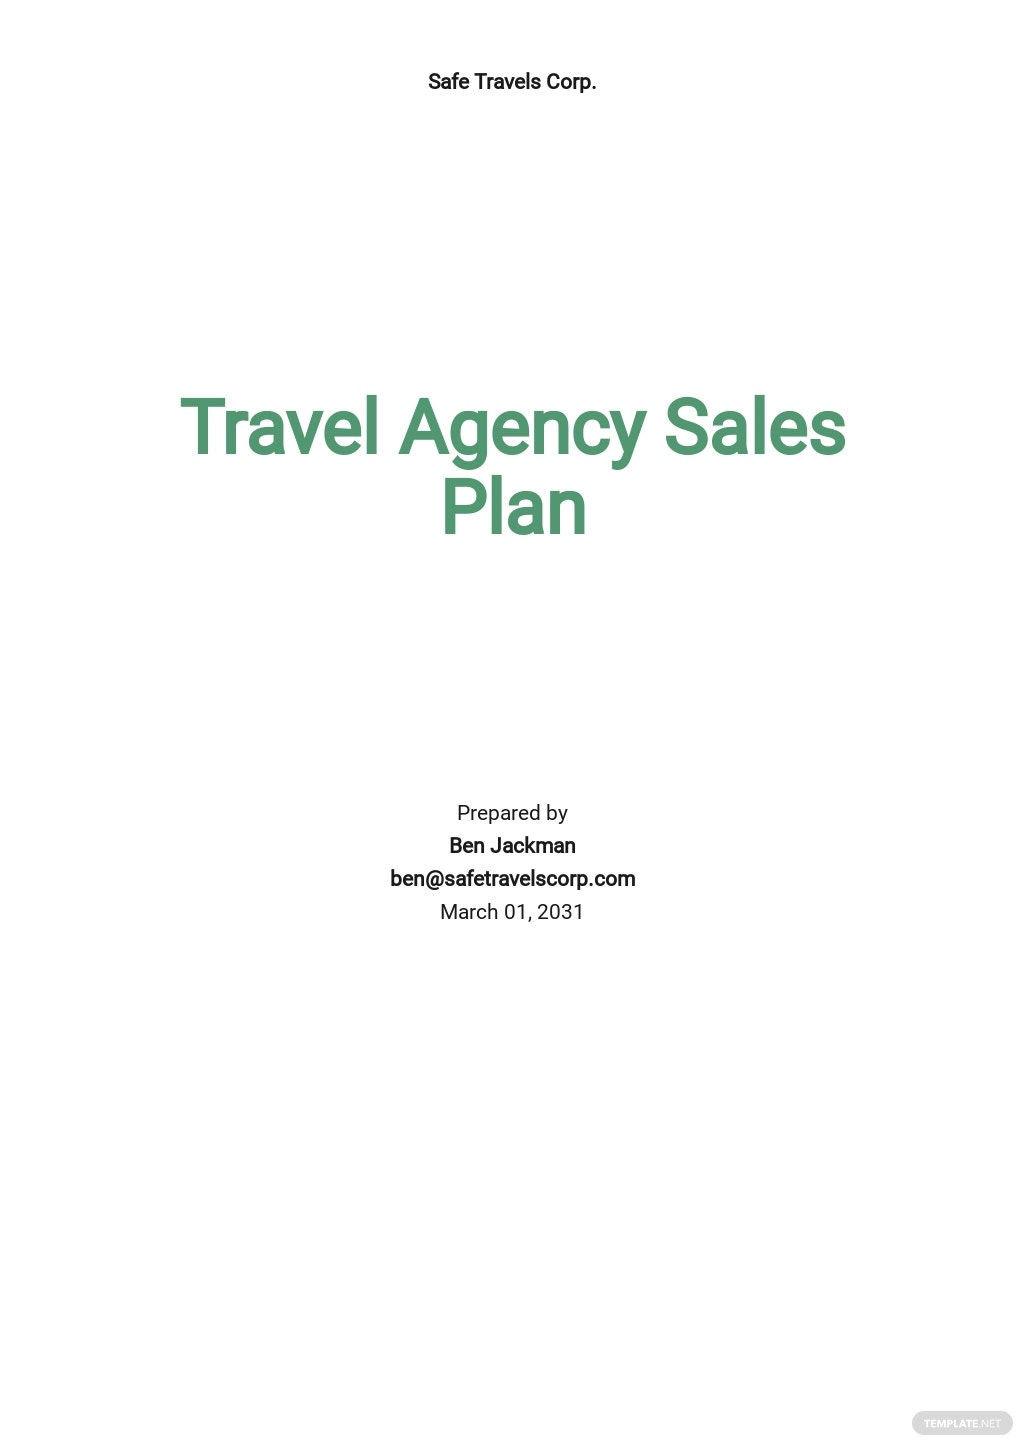 Travel Agency Sales Plan Template